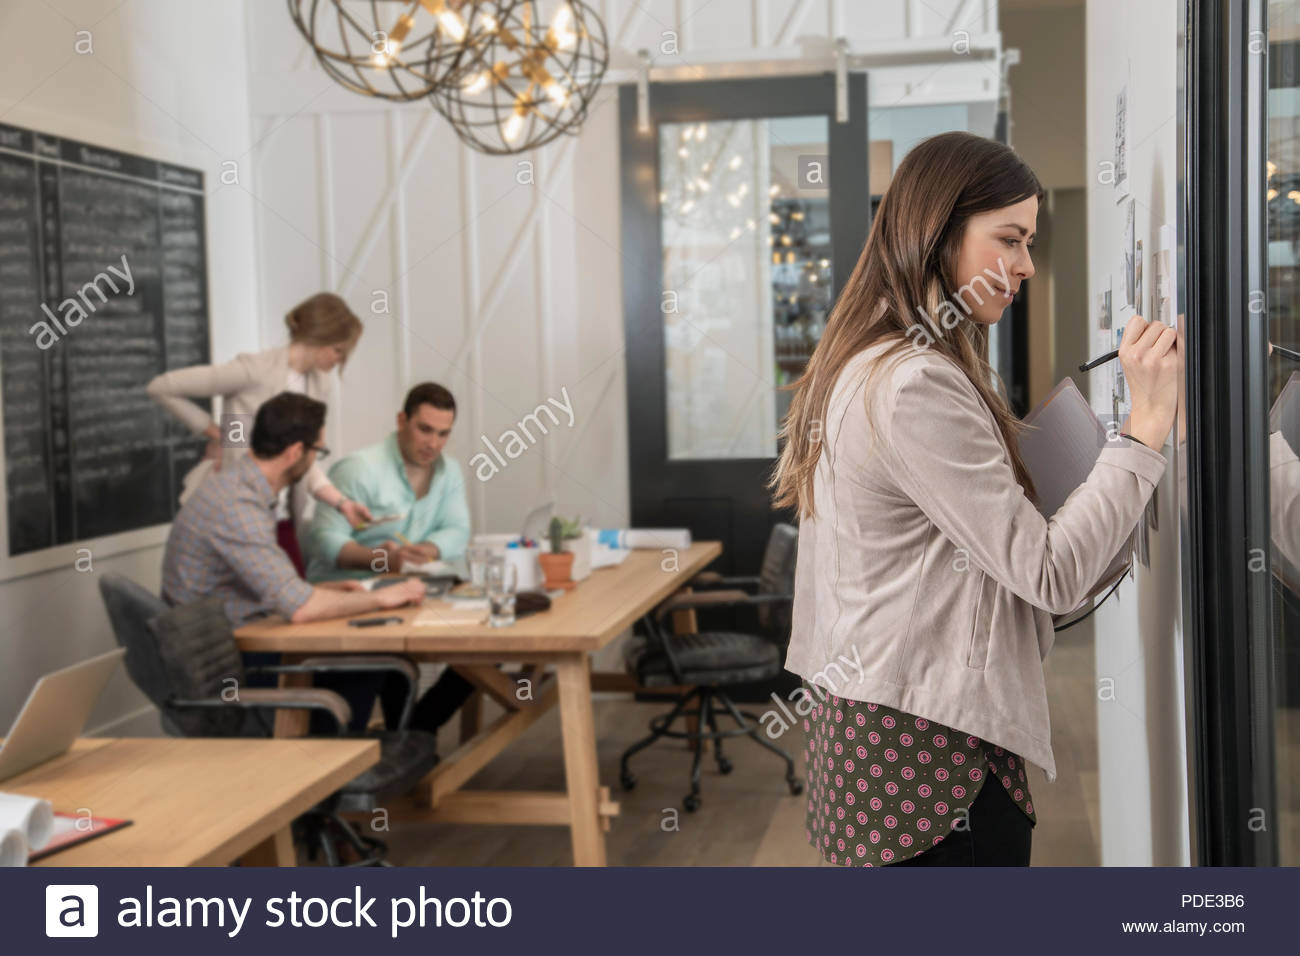 Female home builder architect planning at wall in office - Stock Image